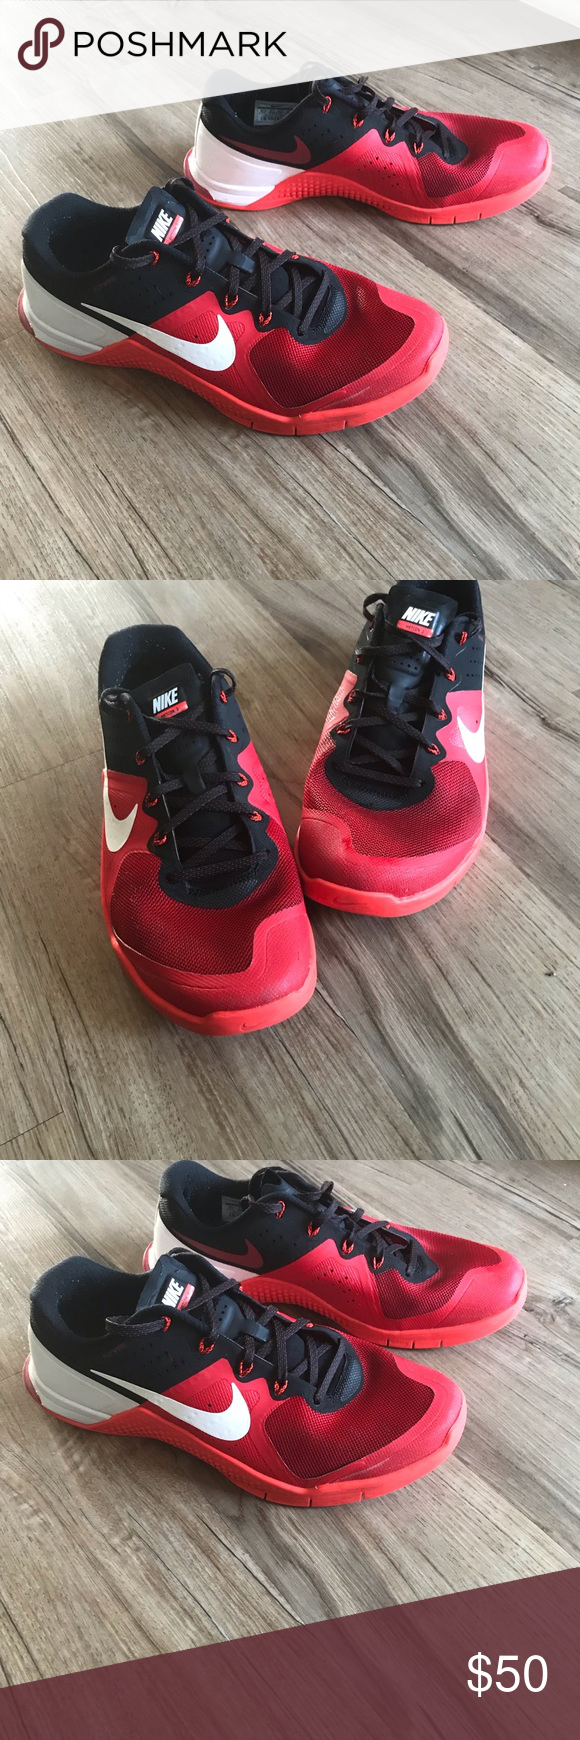 Flywire | Red nike, Nike metcon